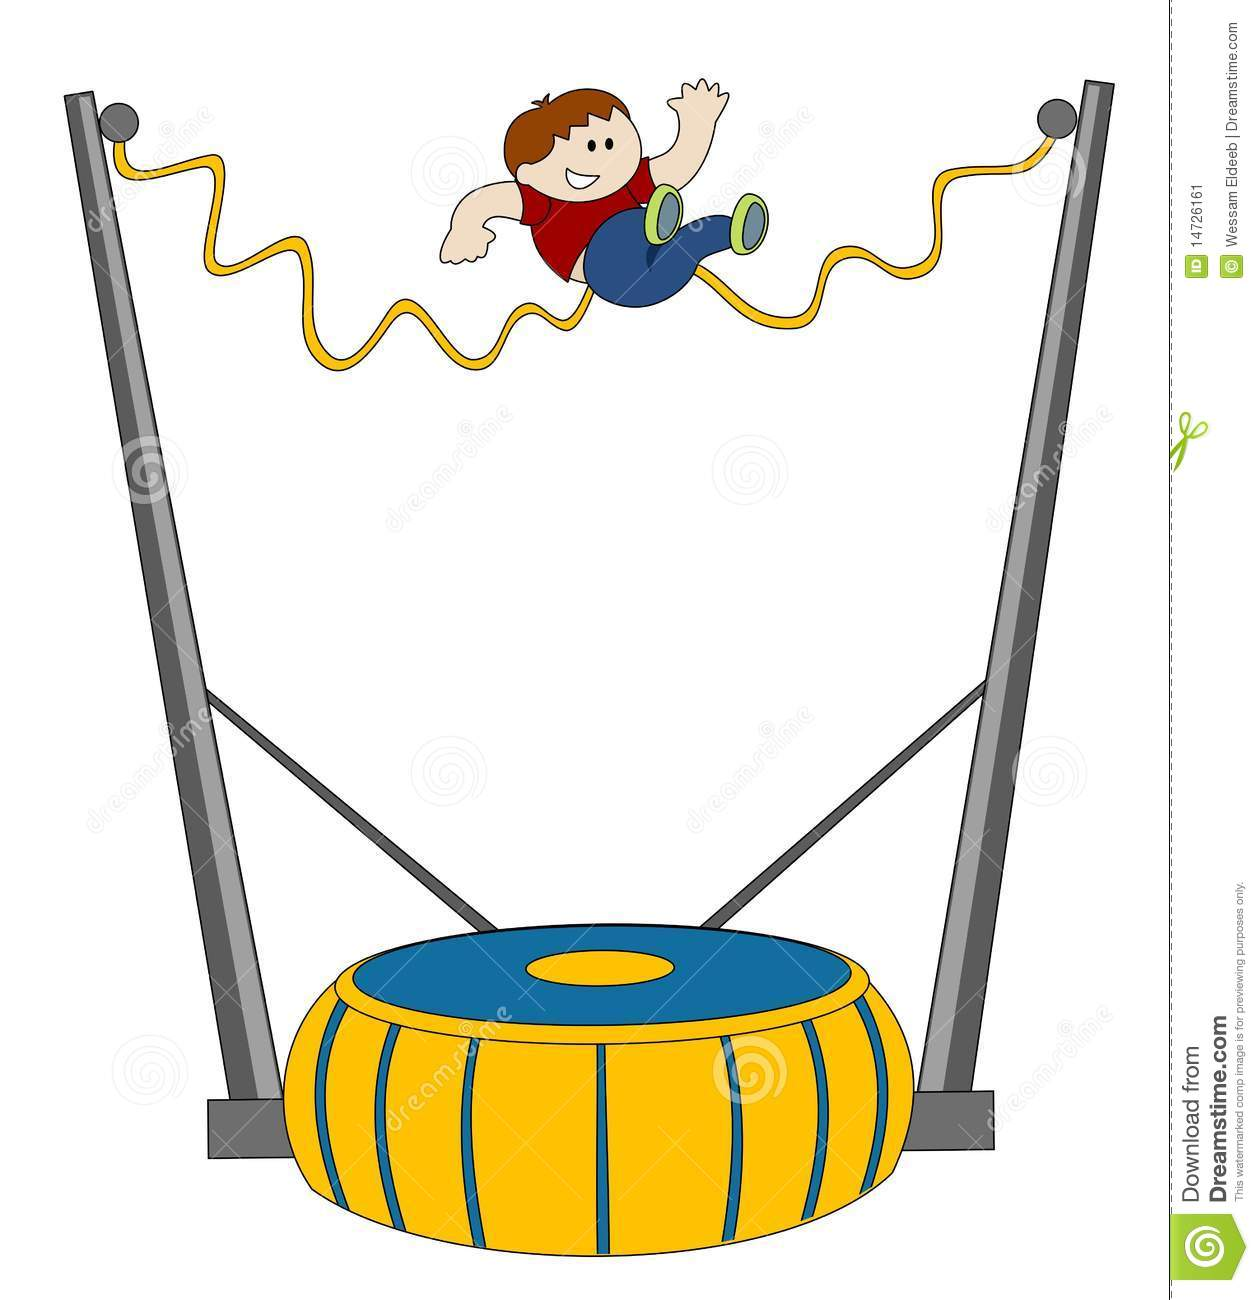 high jump clipart - photo #38